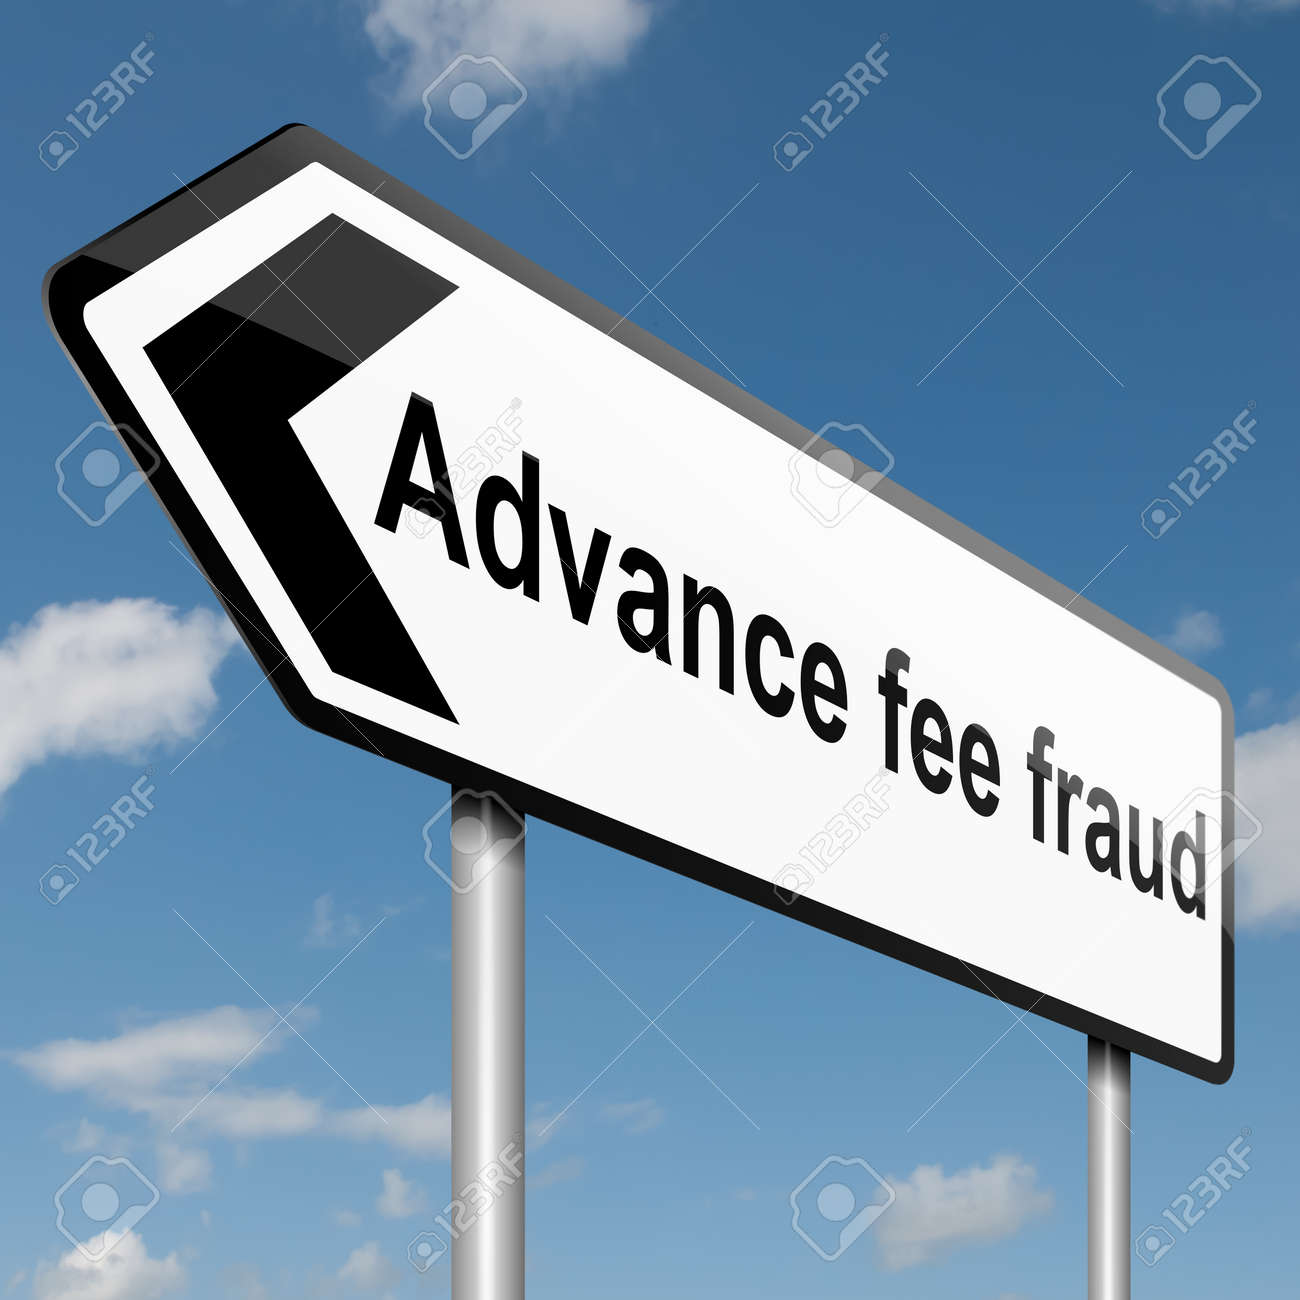 Illustration depicting a road traffic sign with an advance fee fraud  concept. Blue sky background. Stock Photo - 14033876